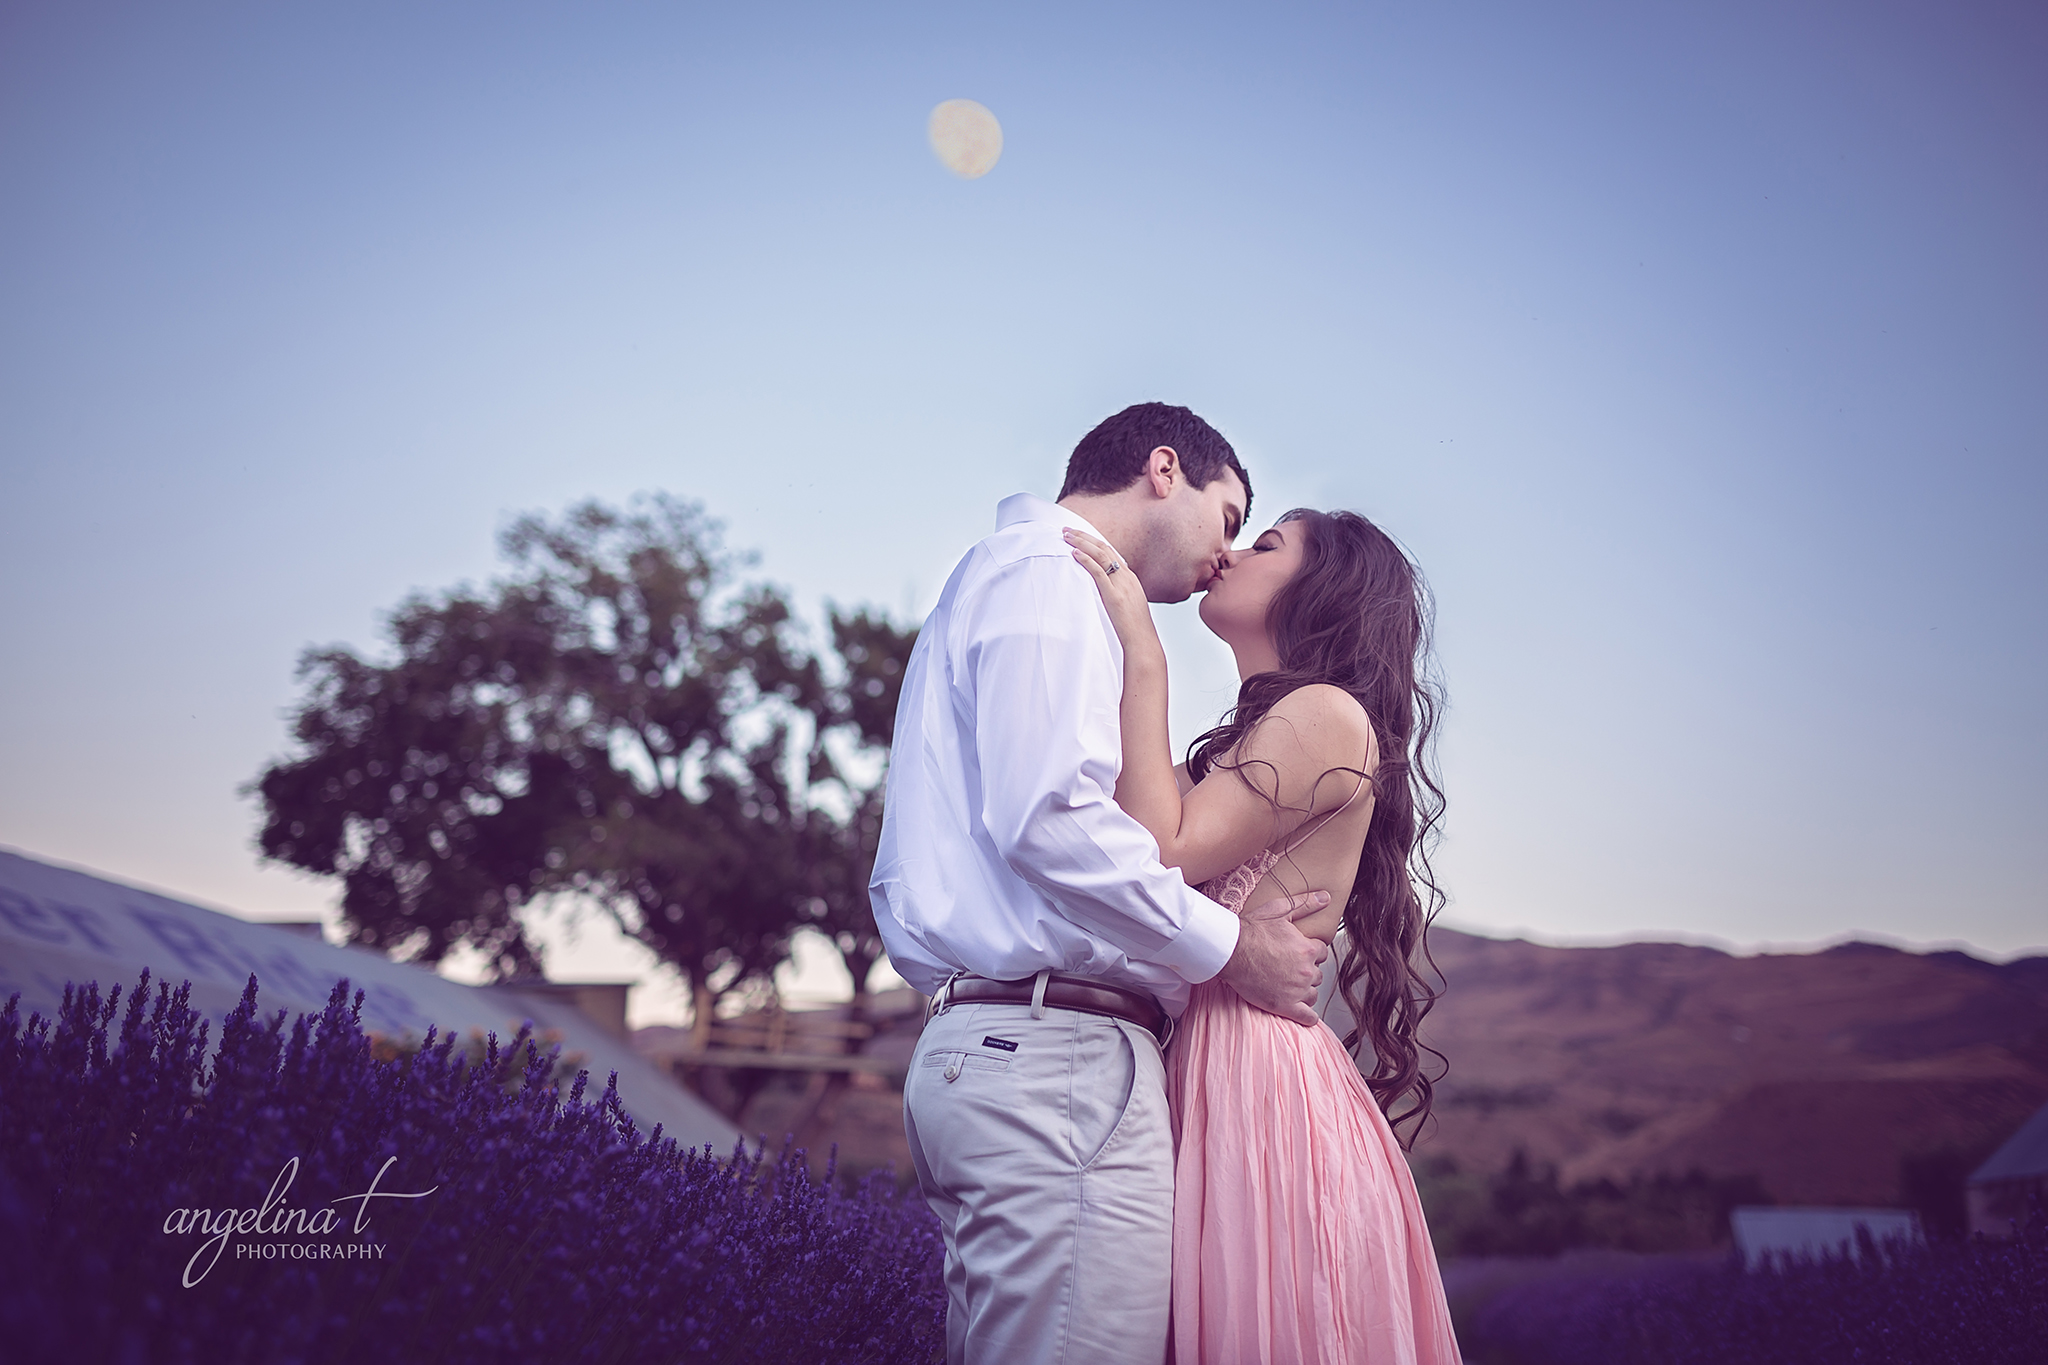 Lavender Field Engagement Photography-12.jpg